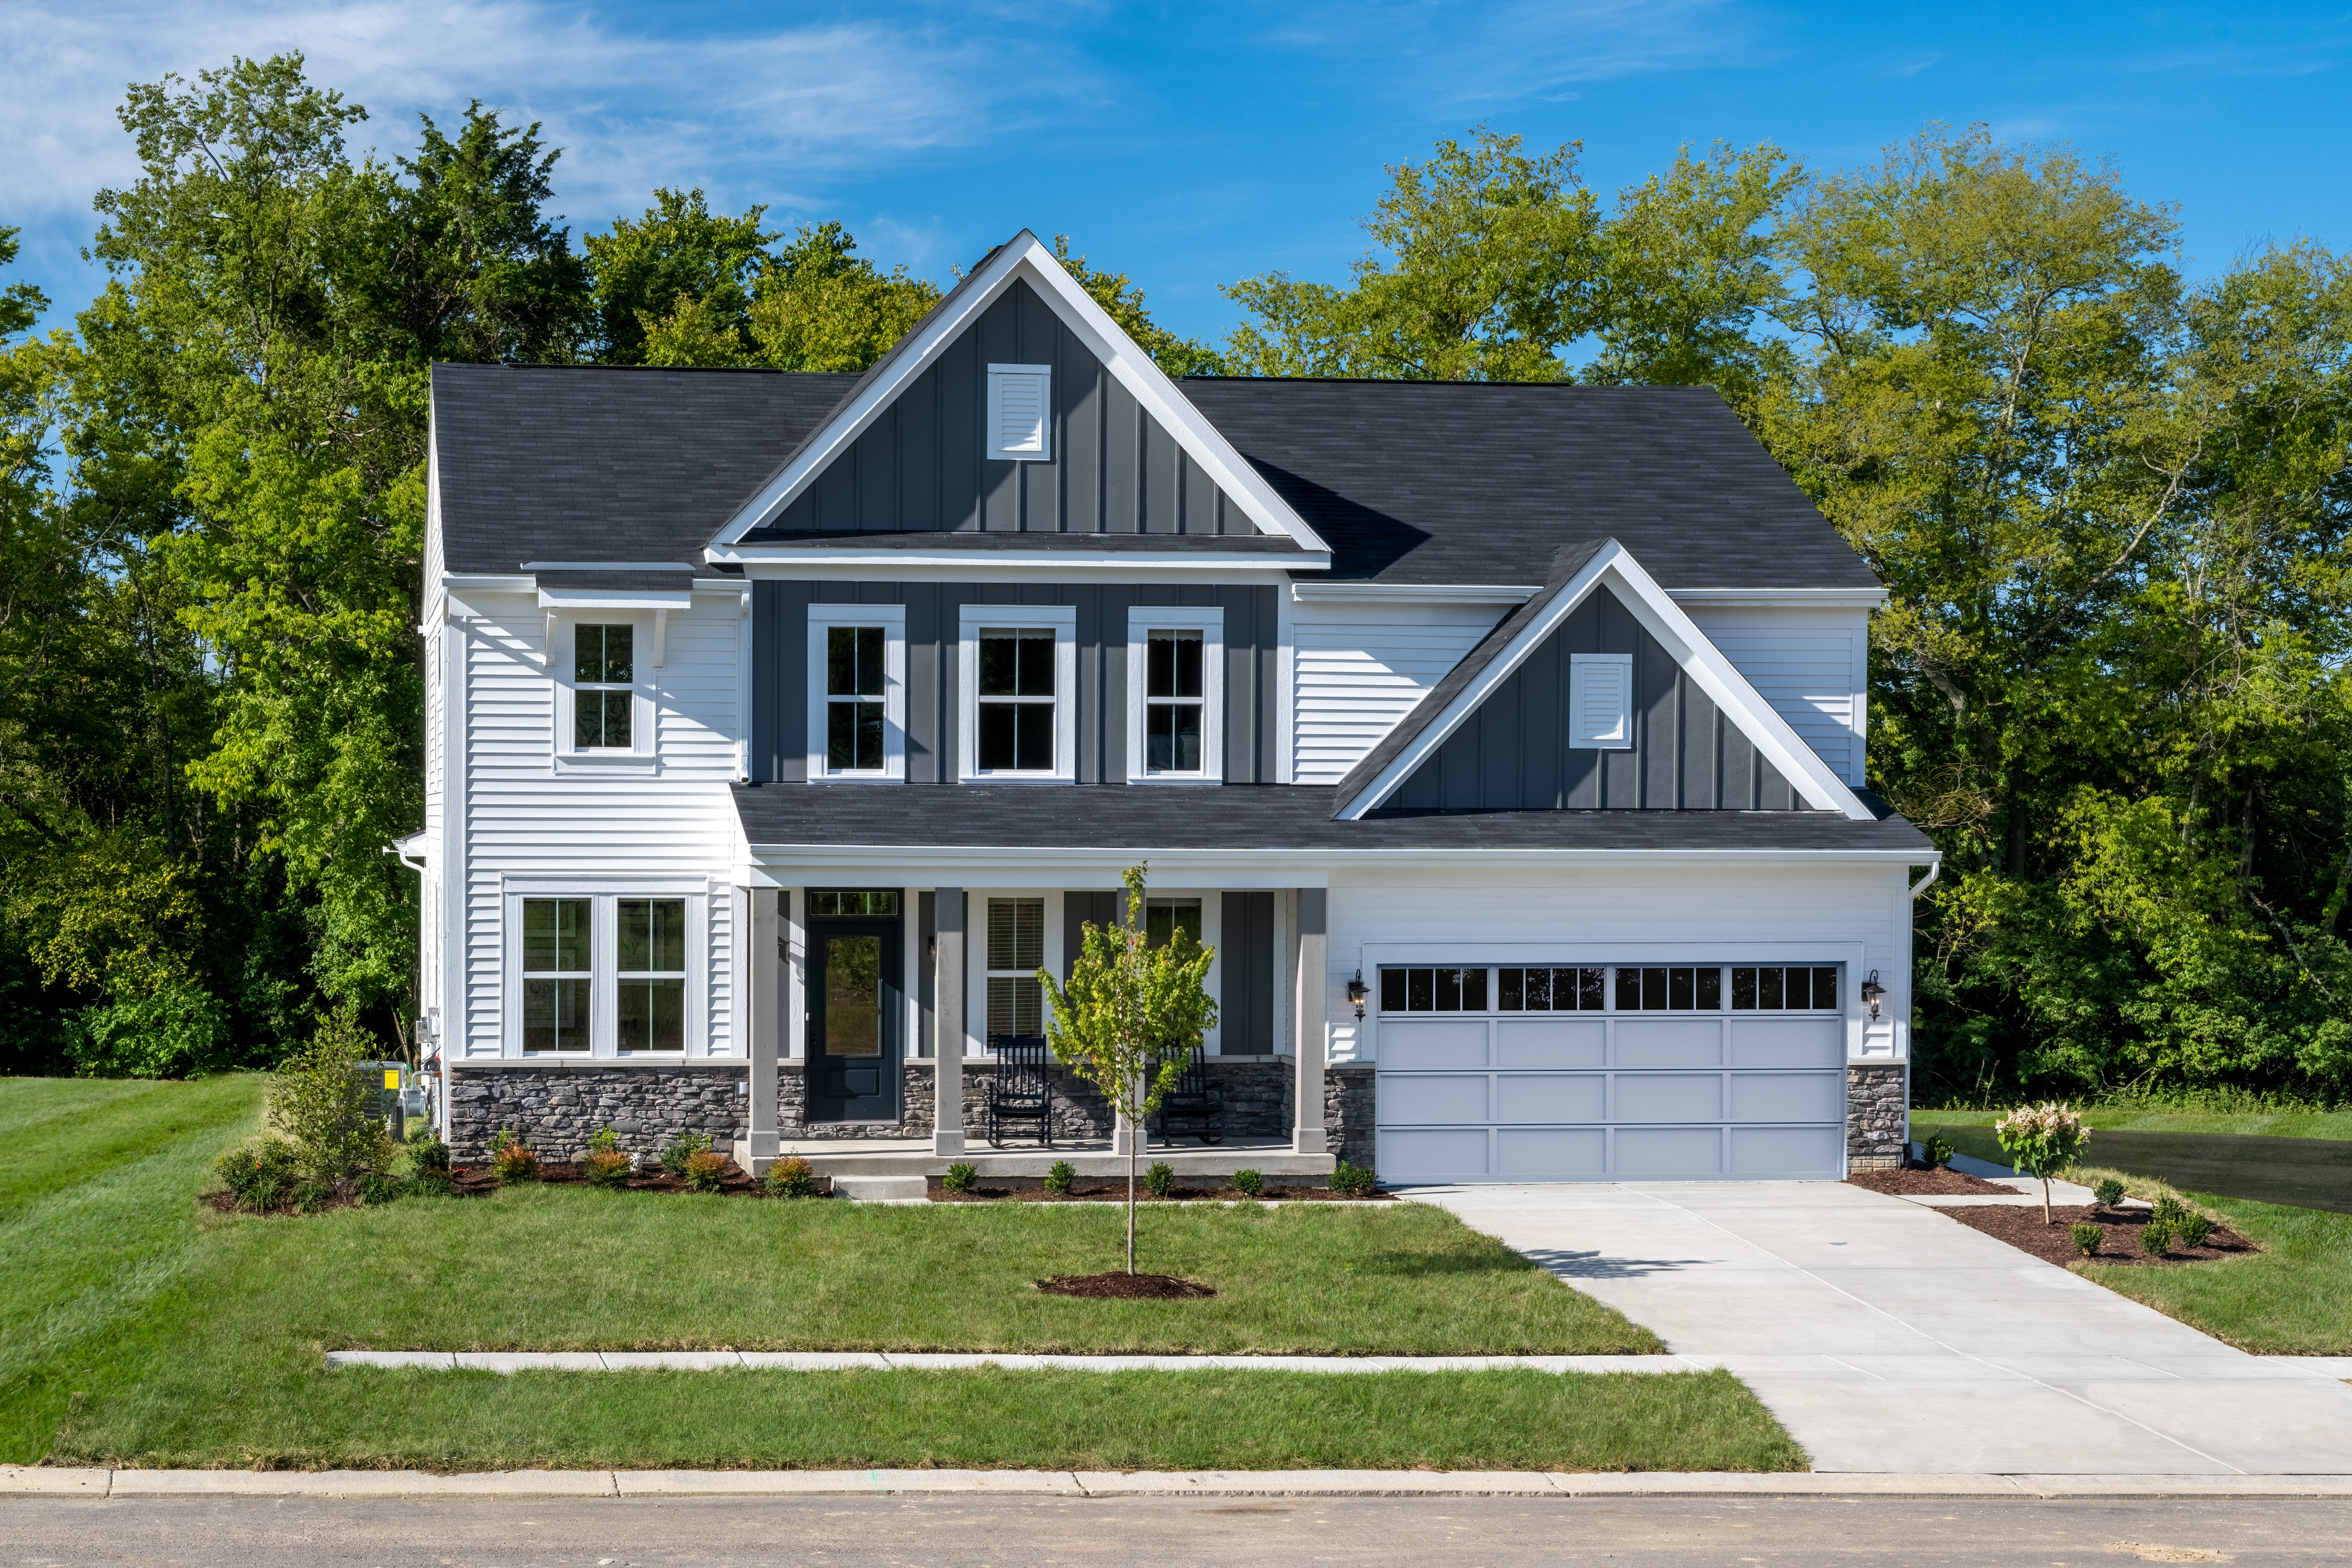 New Home Communities In St. Louis Featuring Beautiful Exteriors And Unique Floorplans